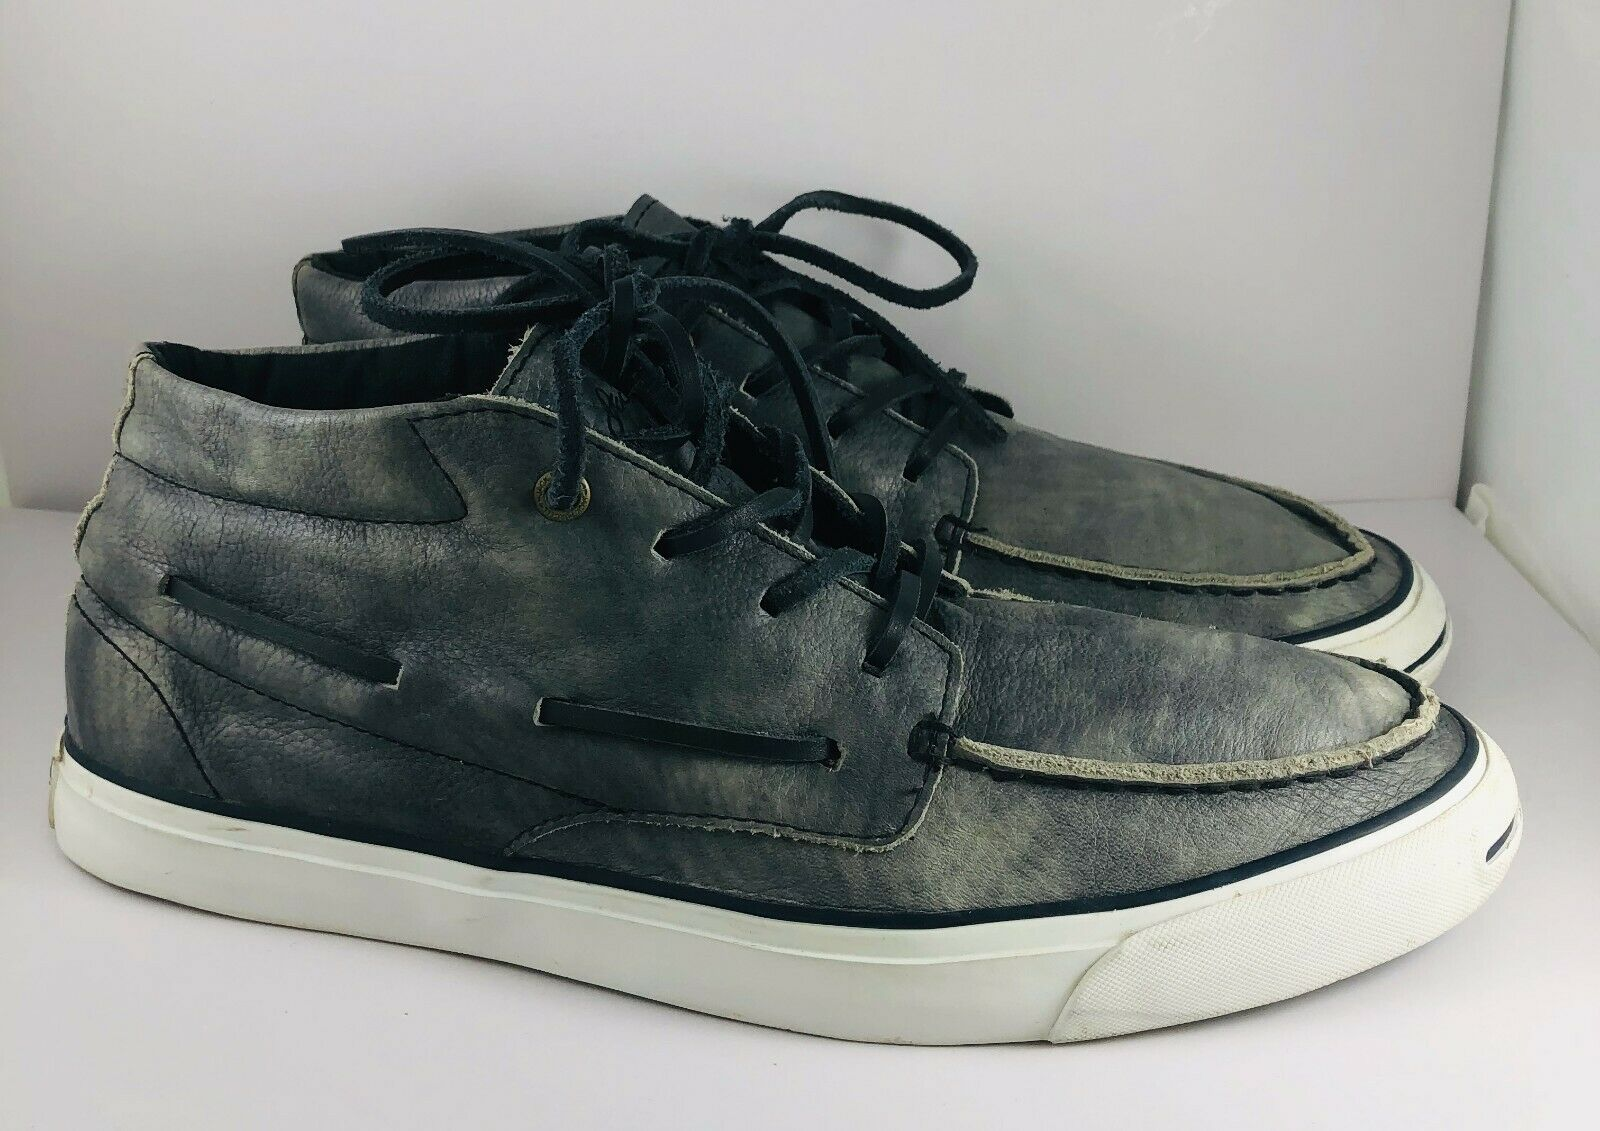 Vintage Converse JACK PURCELL Navy bluee Leather Sneakers Size Men's 9.5 Women 11